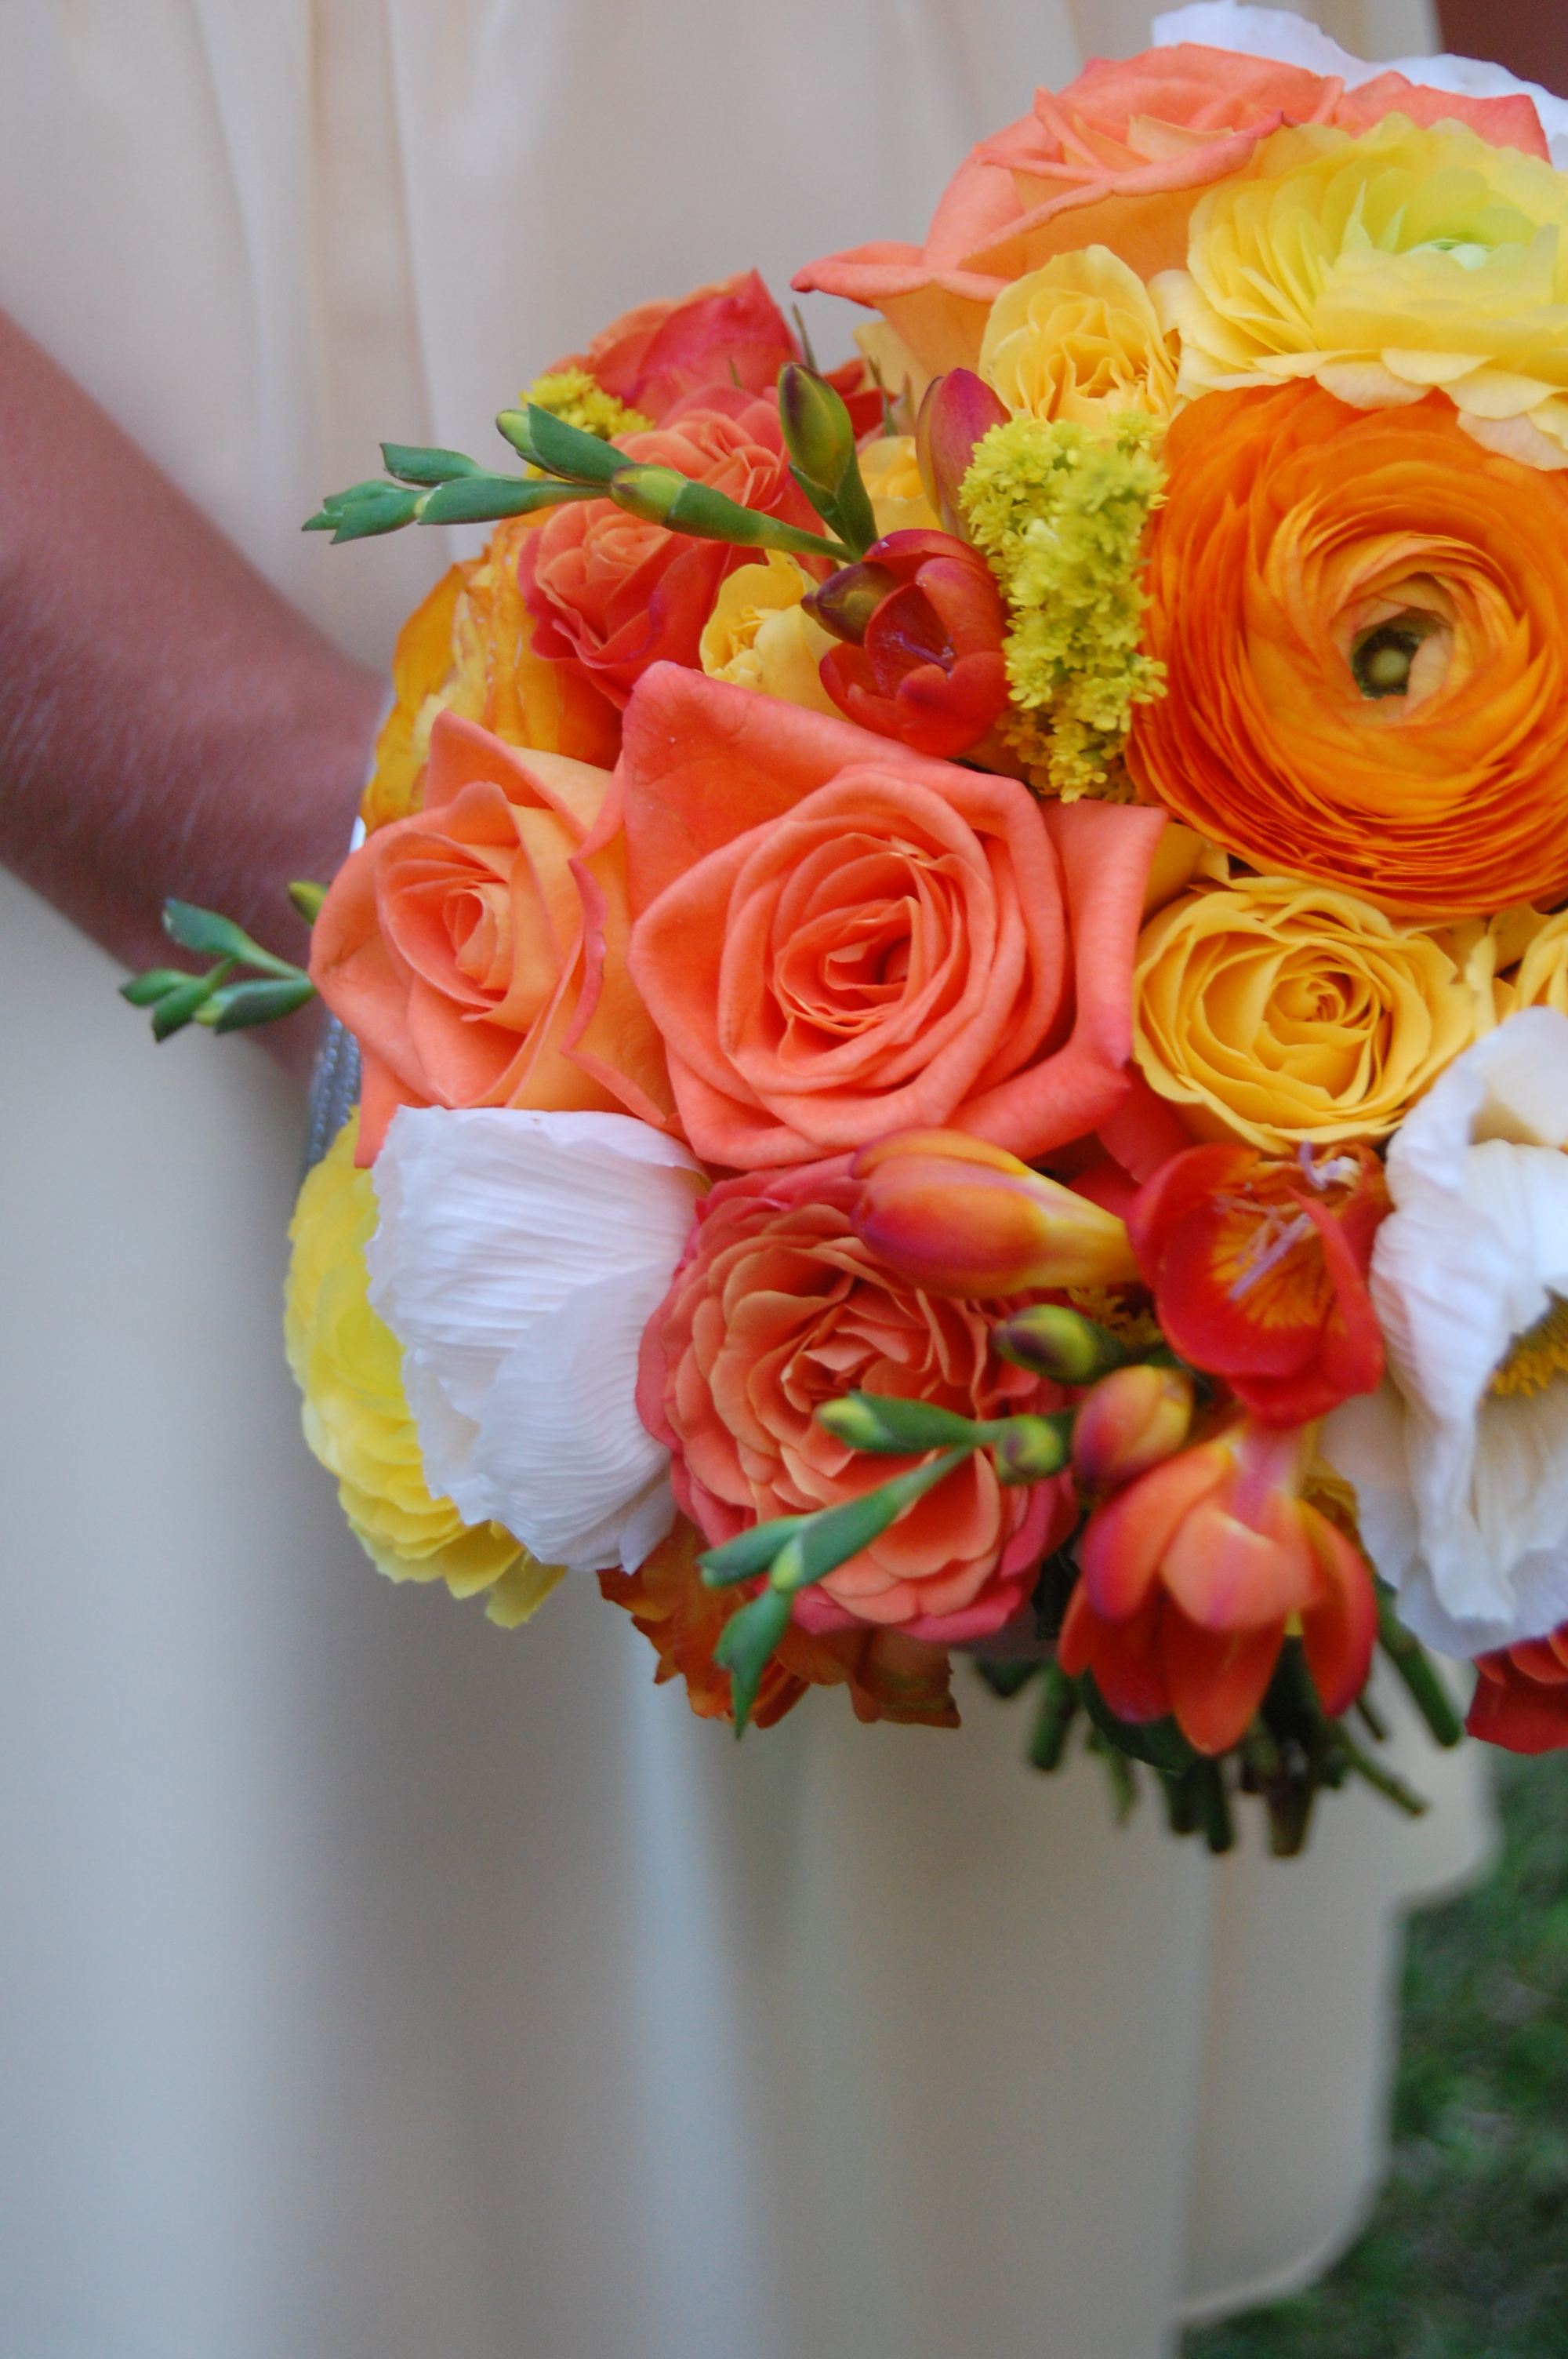 Ranunculus, Roses, Poppies, Freesia